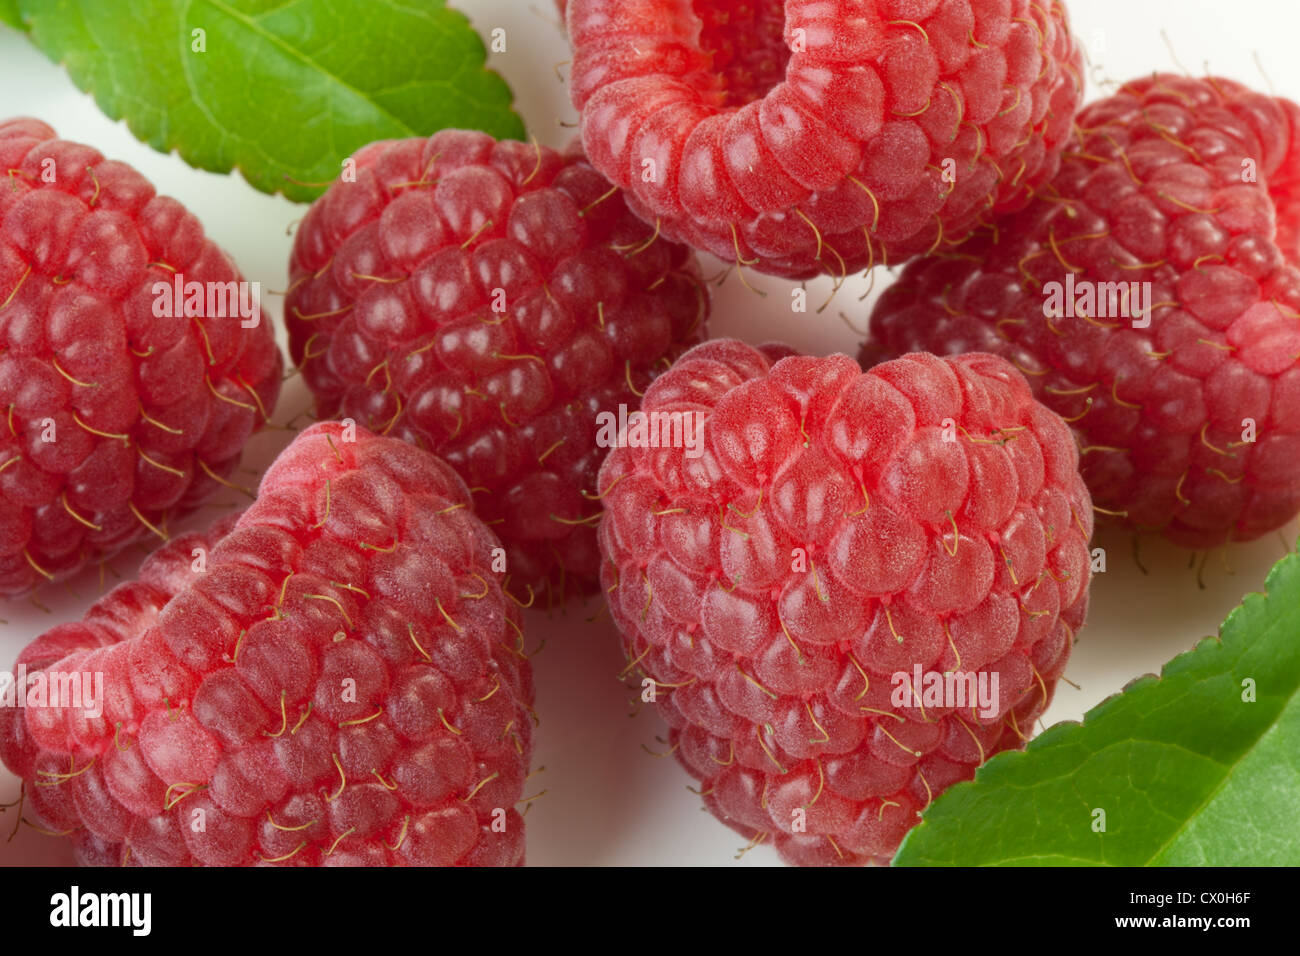 Close up of rasberries with leaves on a white tile - Stock Image